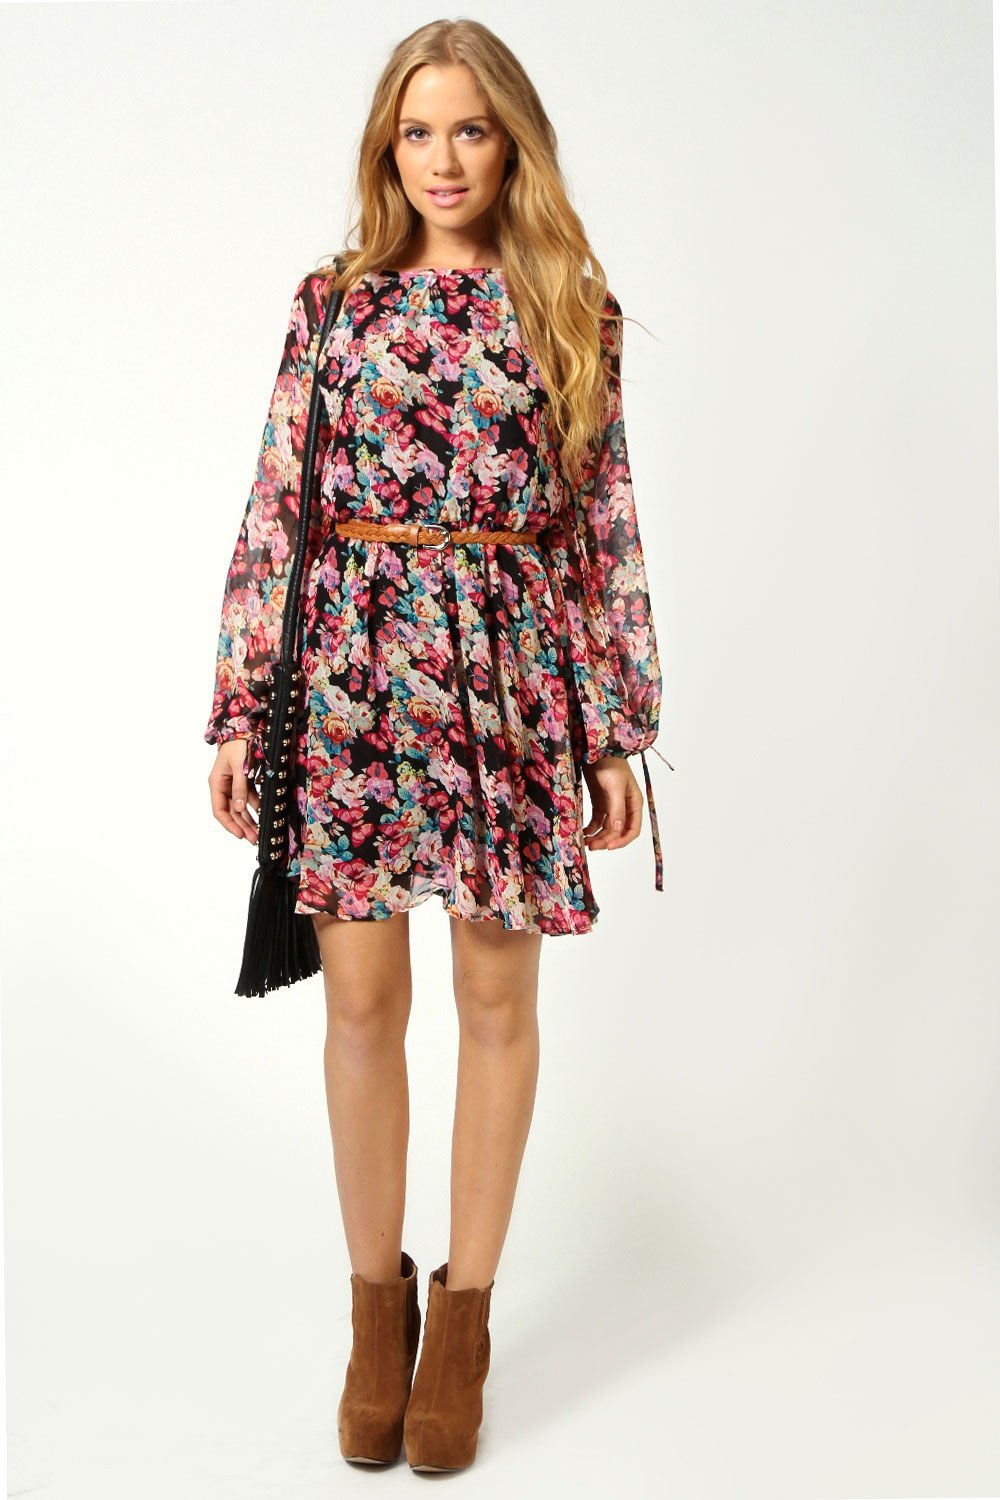 Fiona Floral Butterfly Print Open Shoulder Long Sleeve Dress